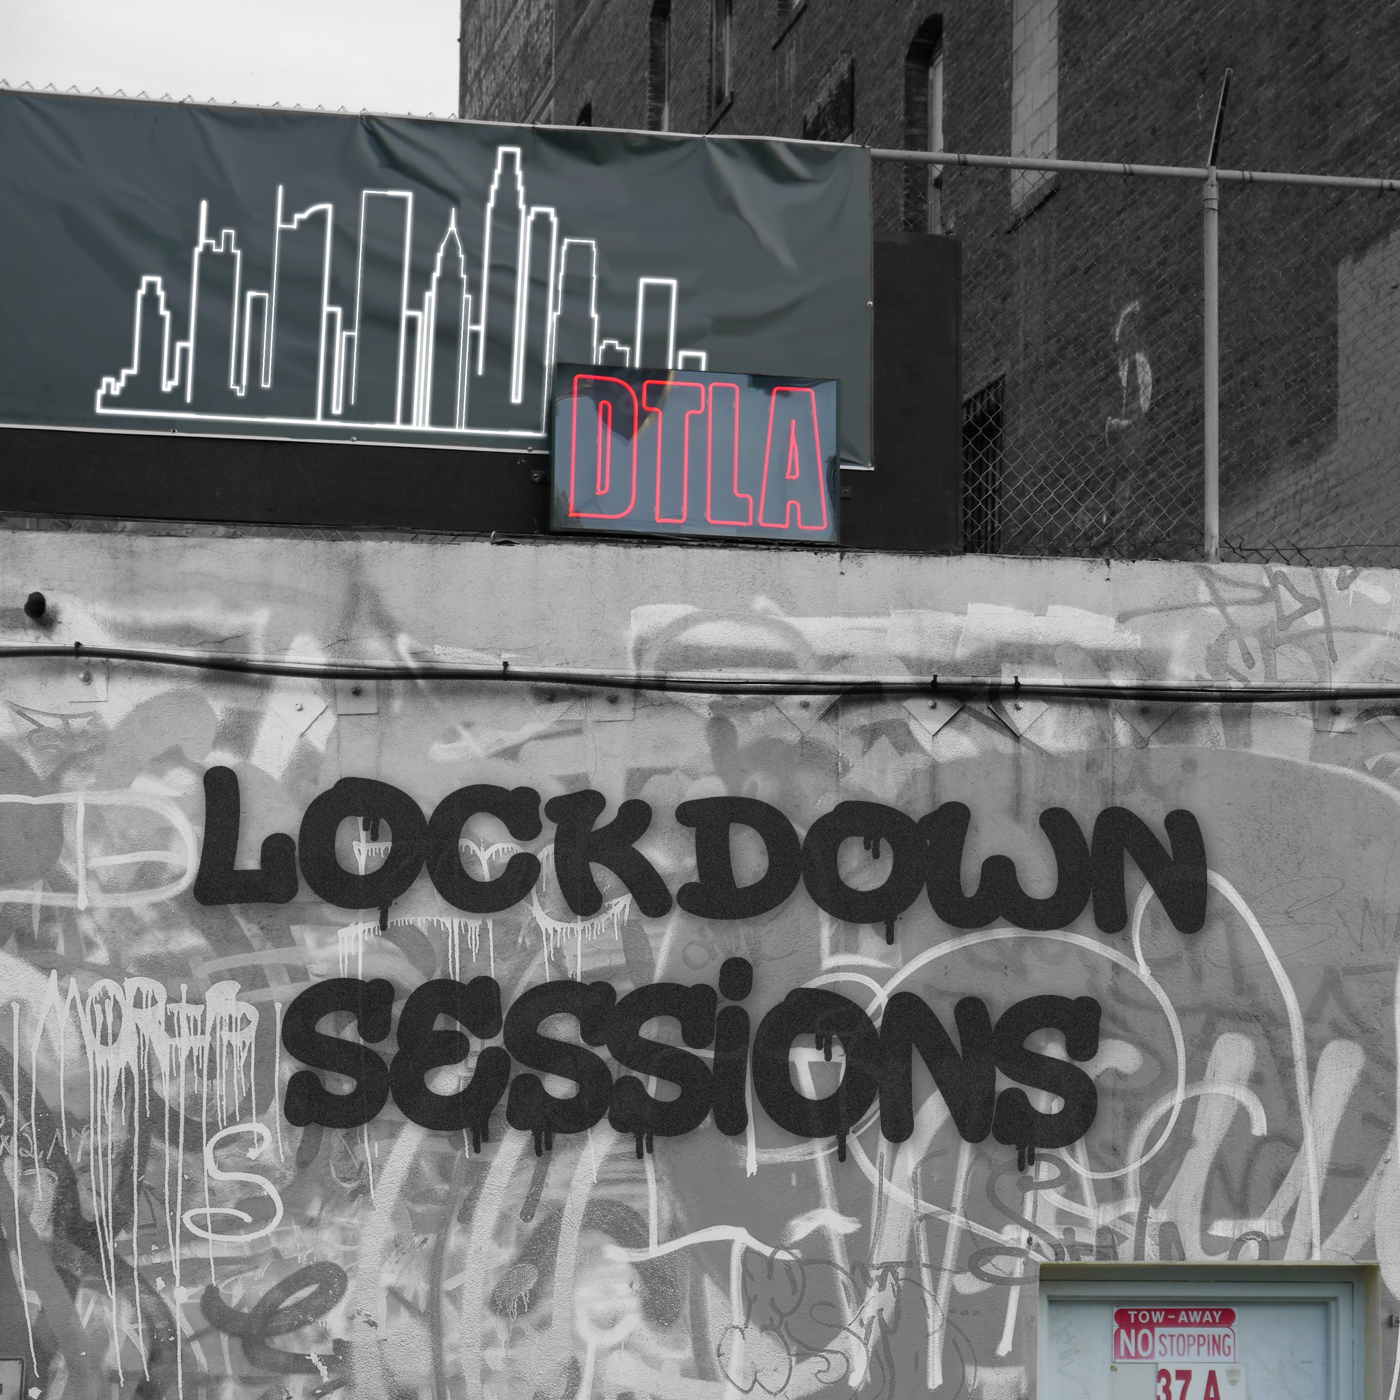 DEEP TECH LOCKDOWN SESSIONS VOL. 1 [DTLA] – Music is 4 Lovers